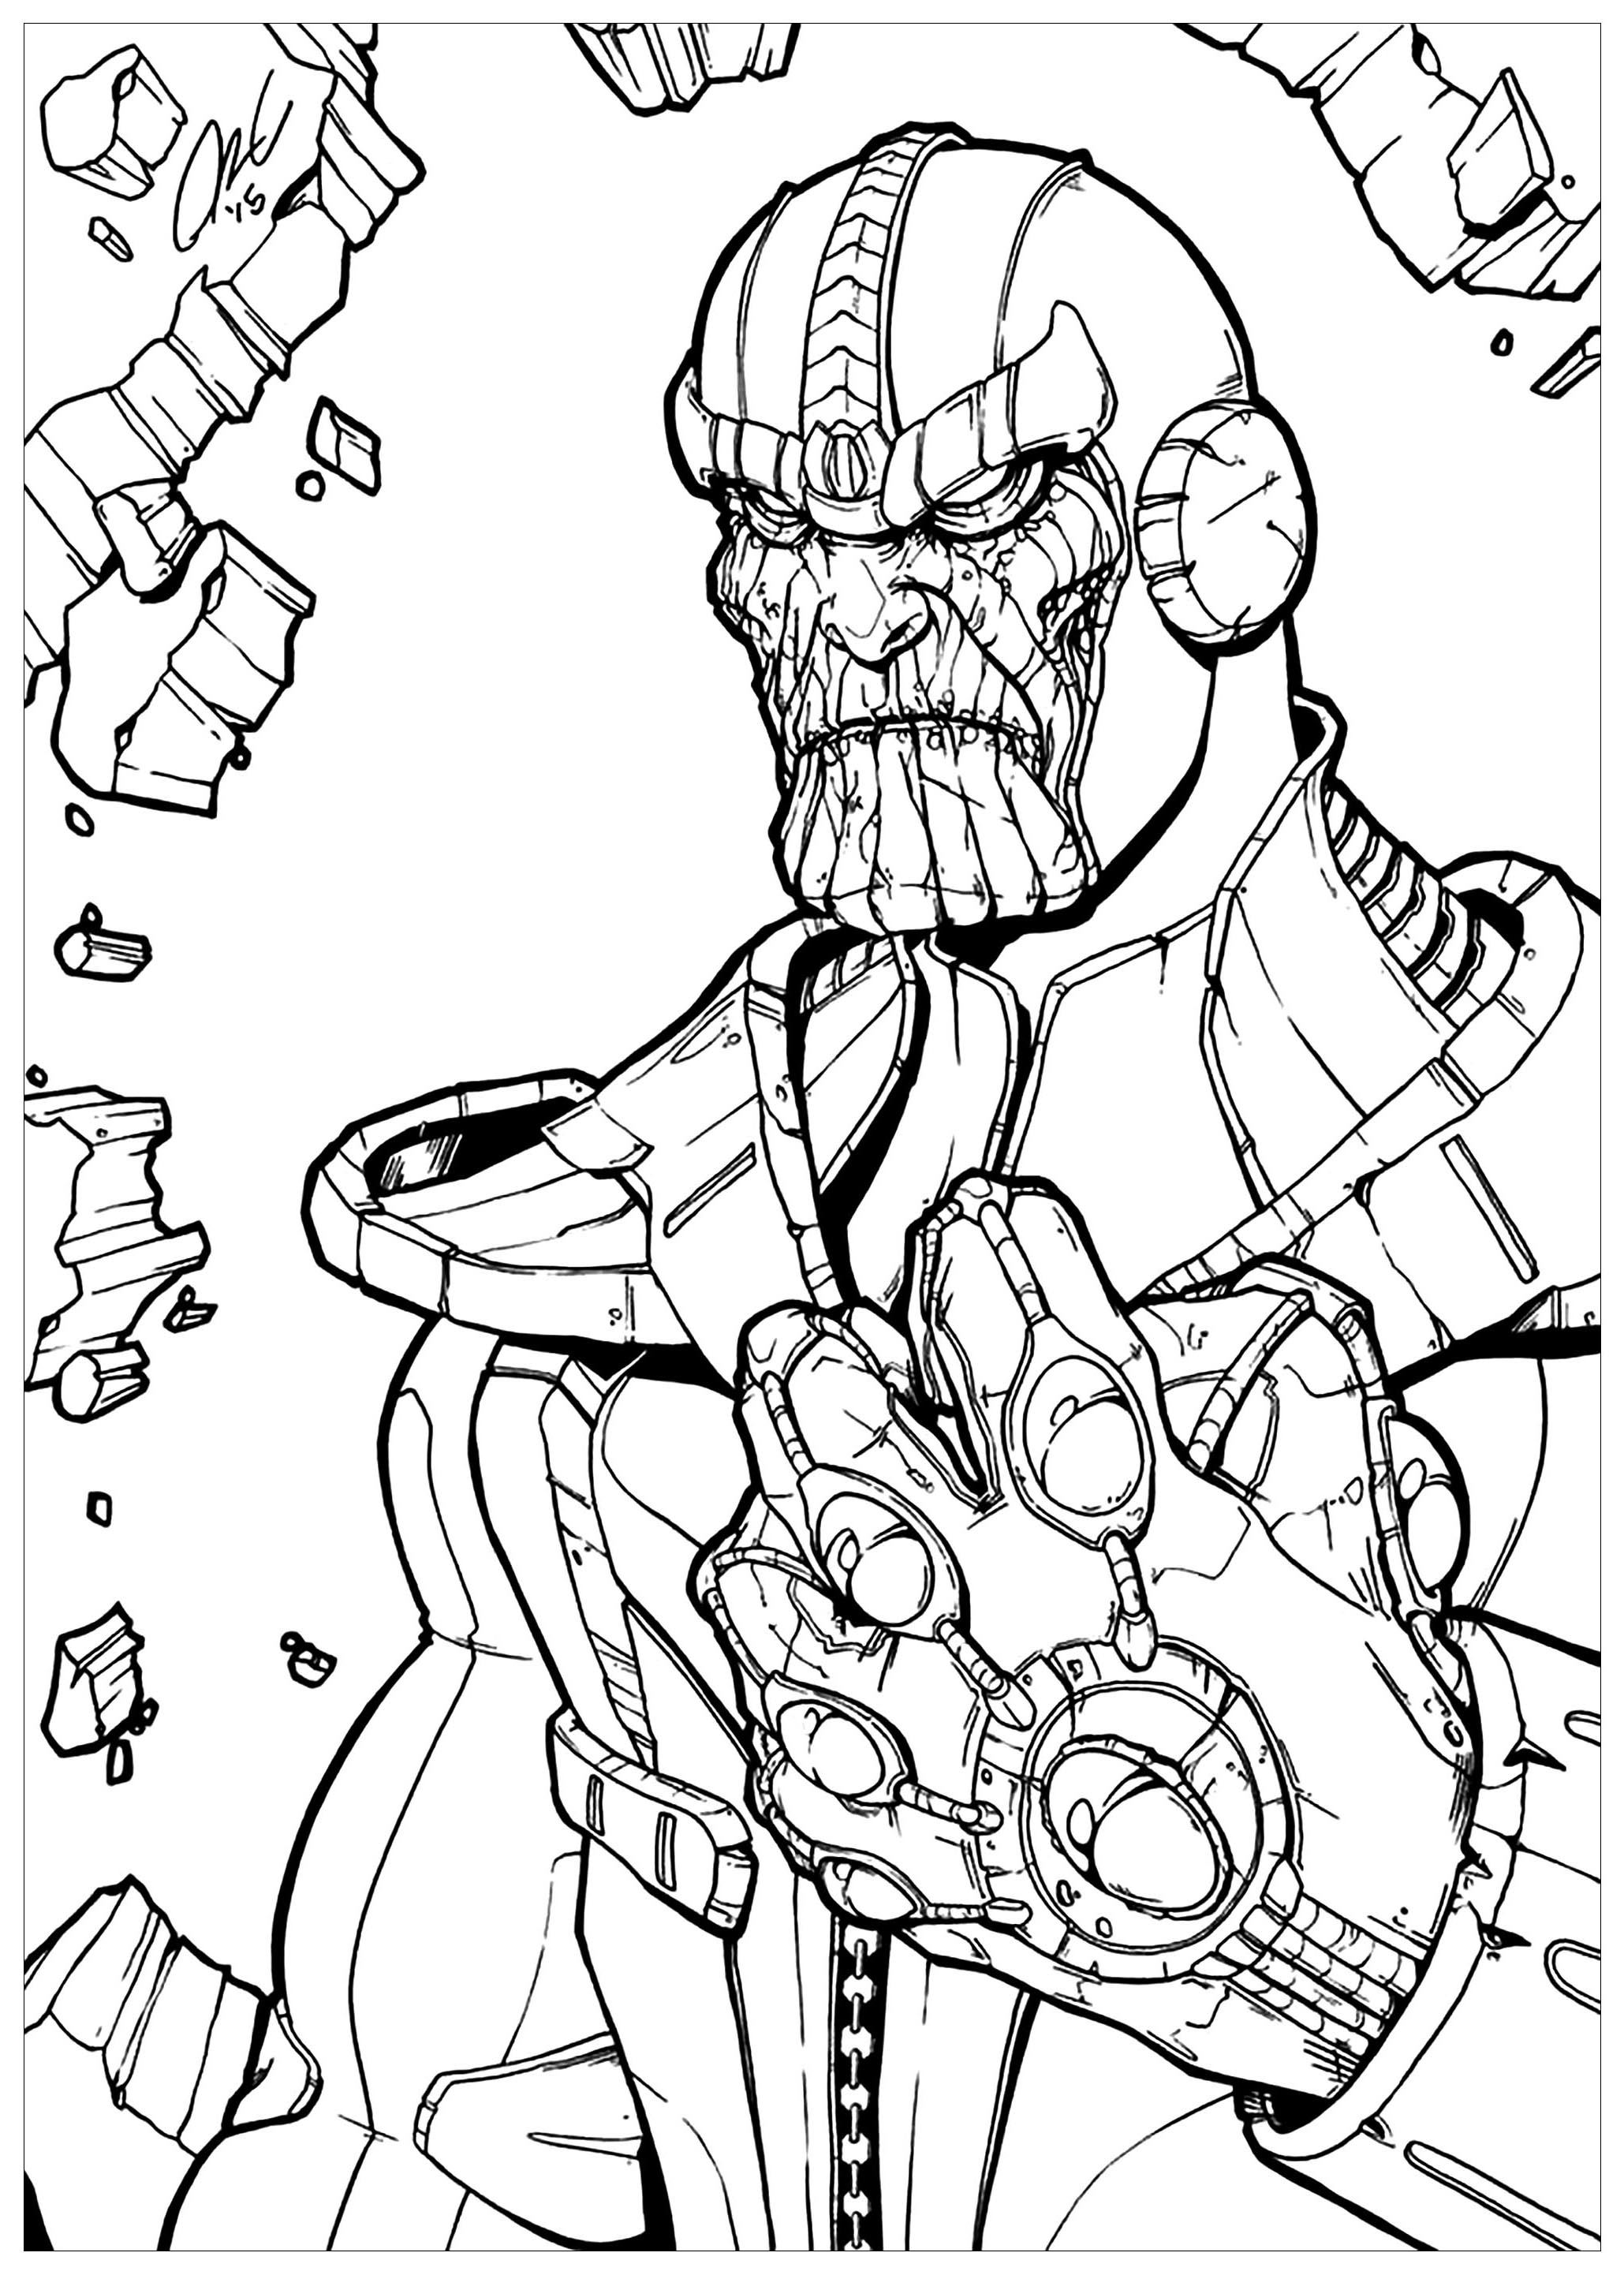 Cute free Thanos coloring page to download